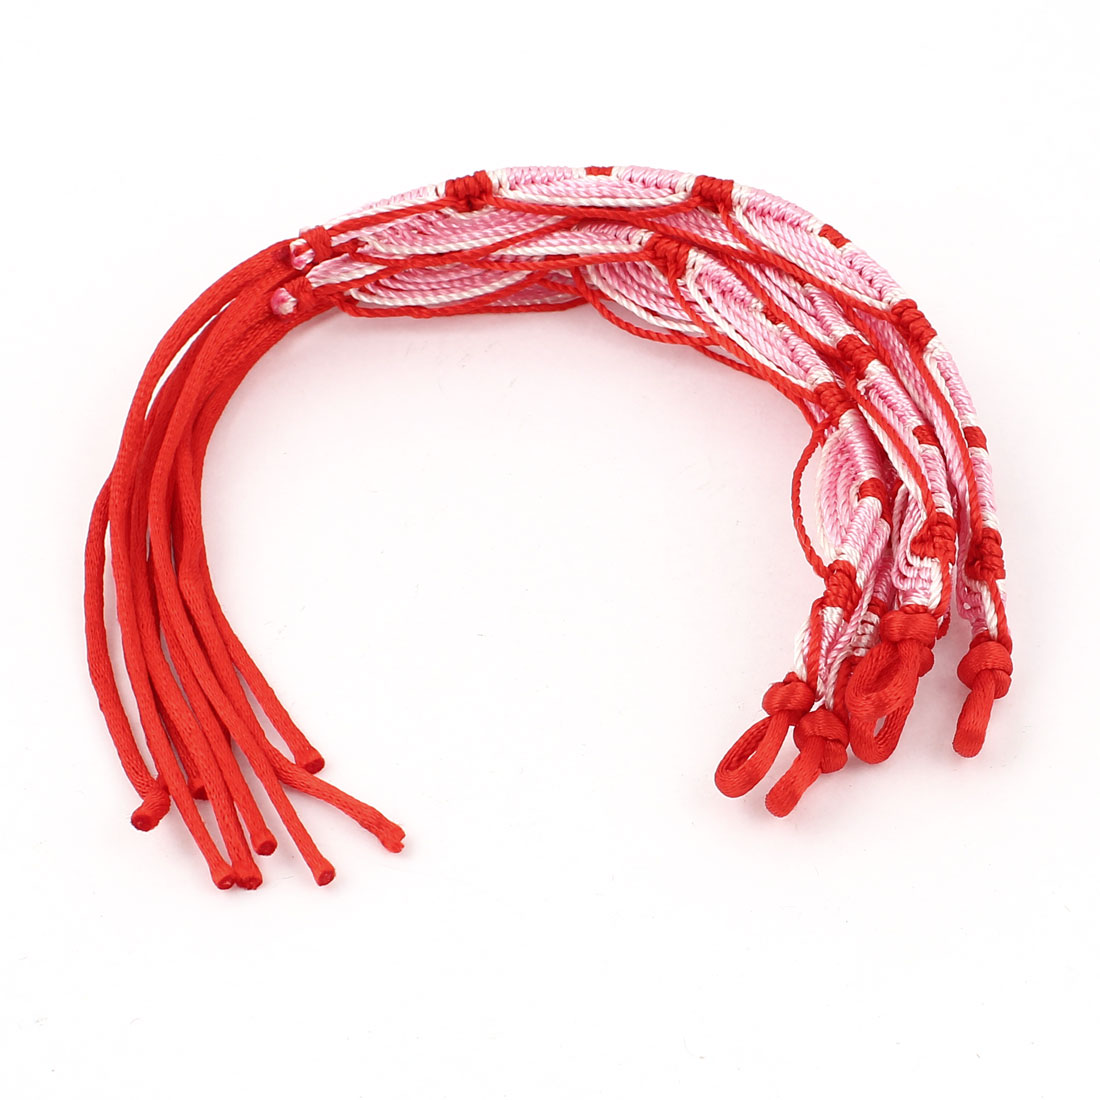 5 Pcs Red Pink Nylon Cord Handwork Braided Wrist Decor Bracelet for Lady